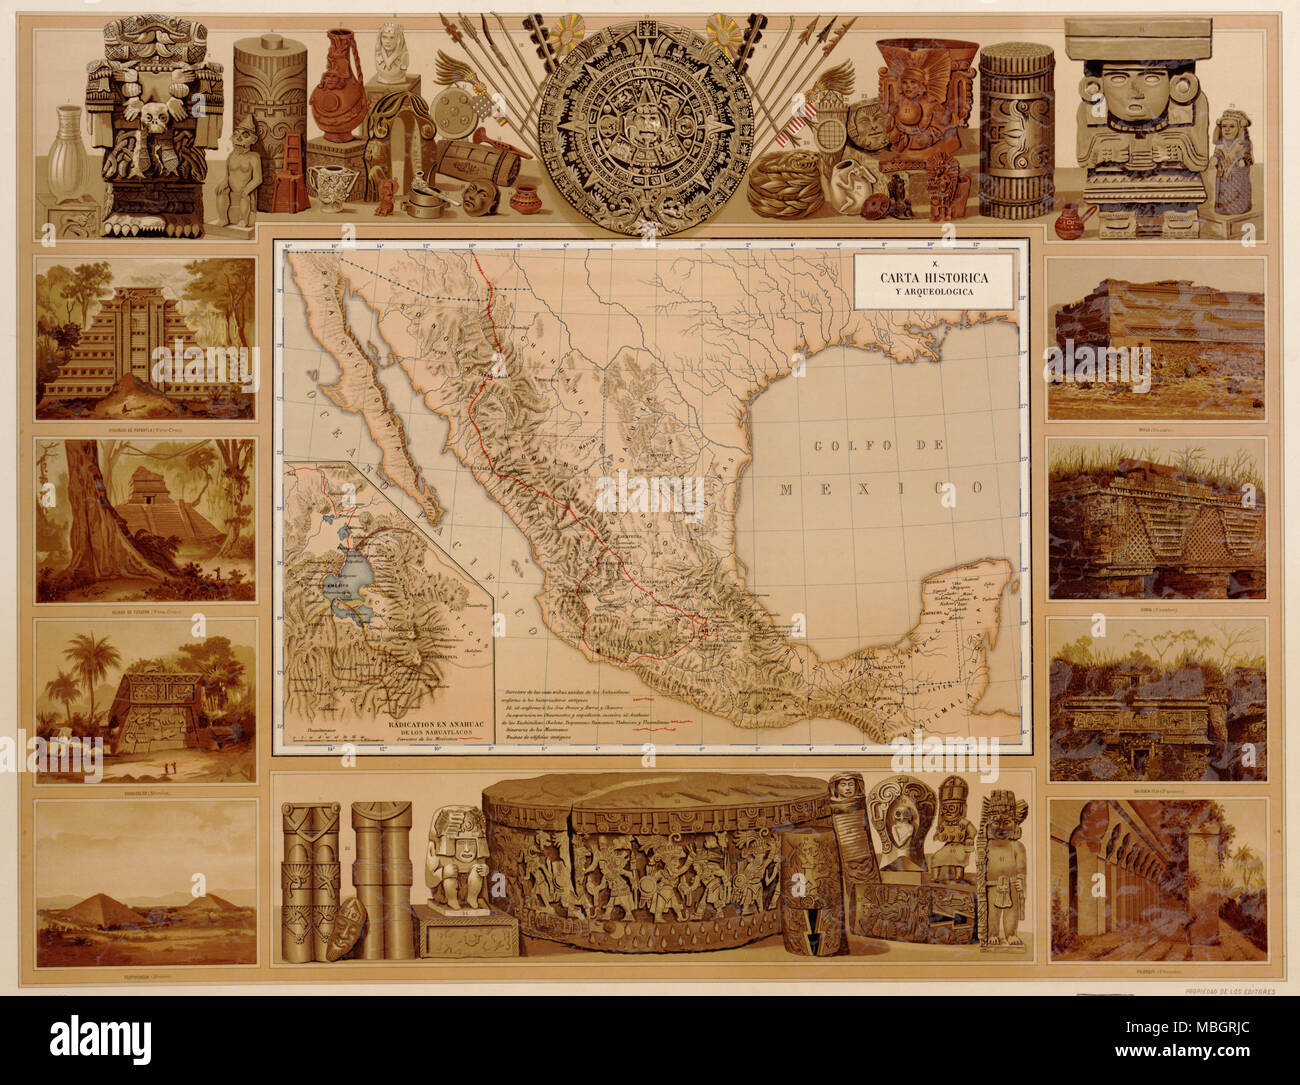 Historical artifacts from Mexico's Indian past - 1885 - Stock Image